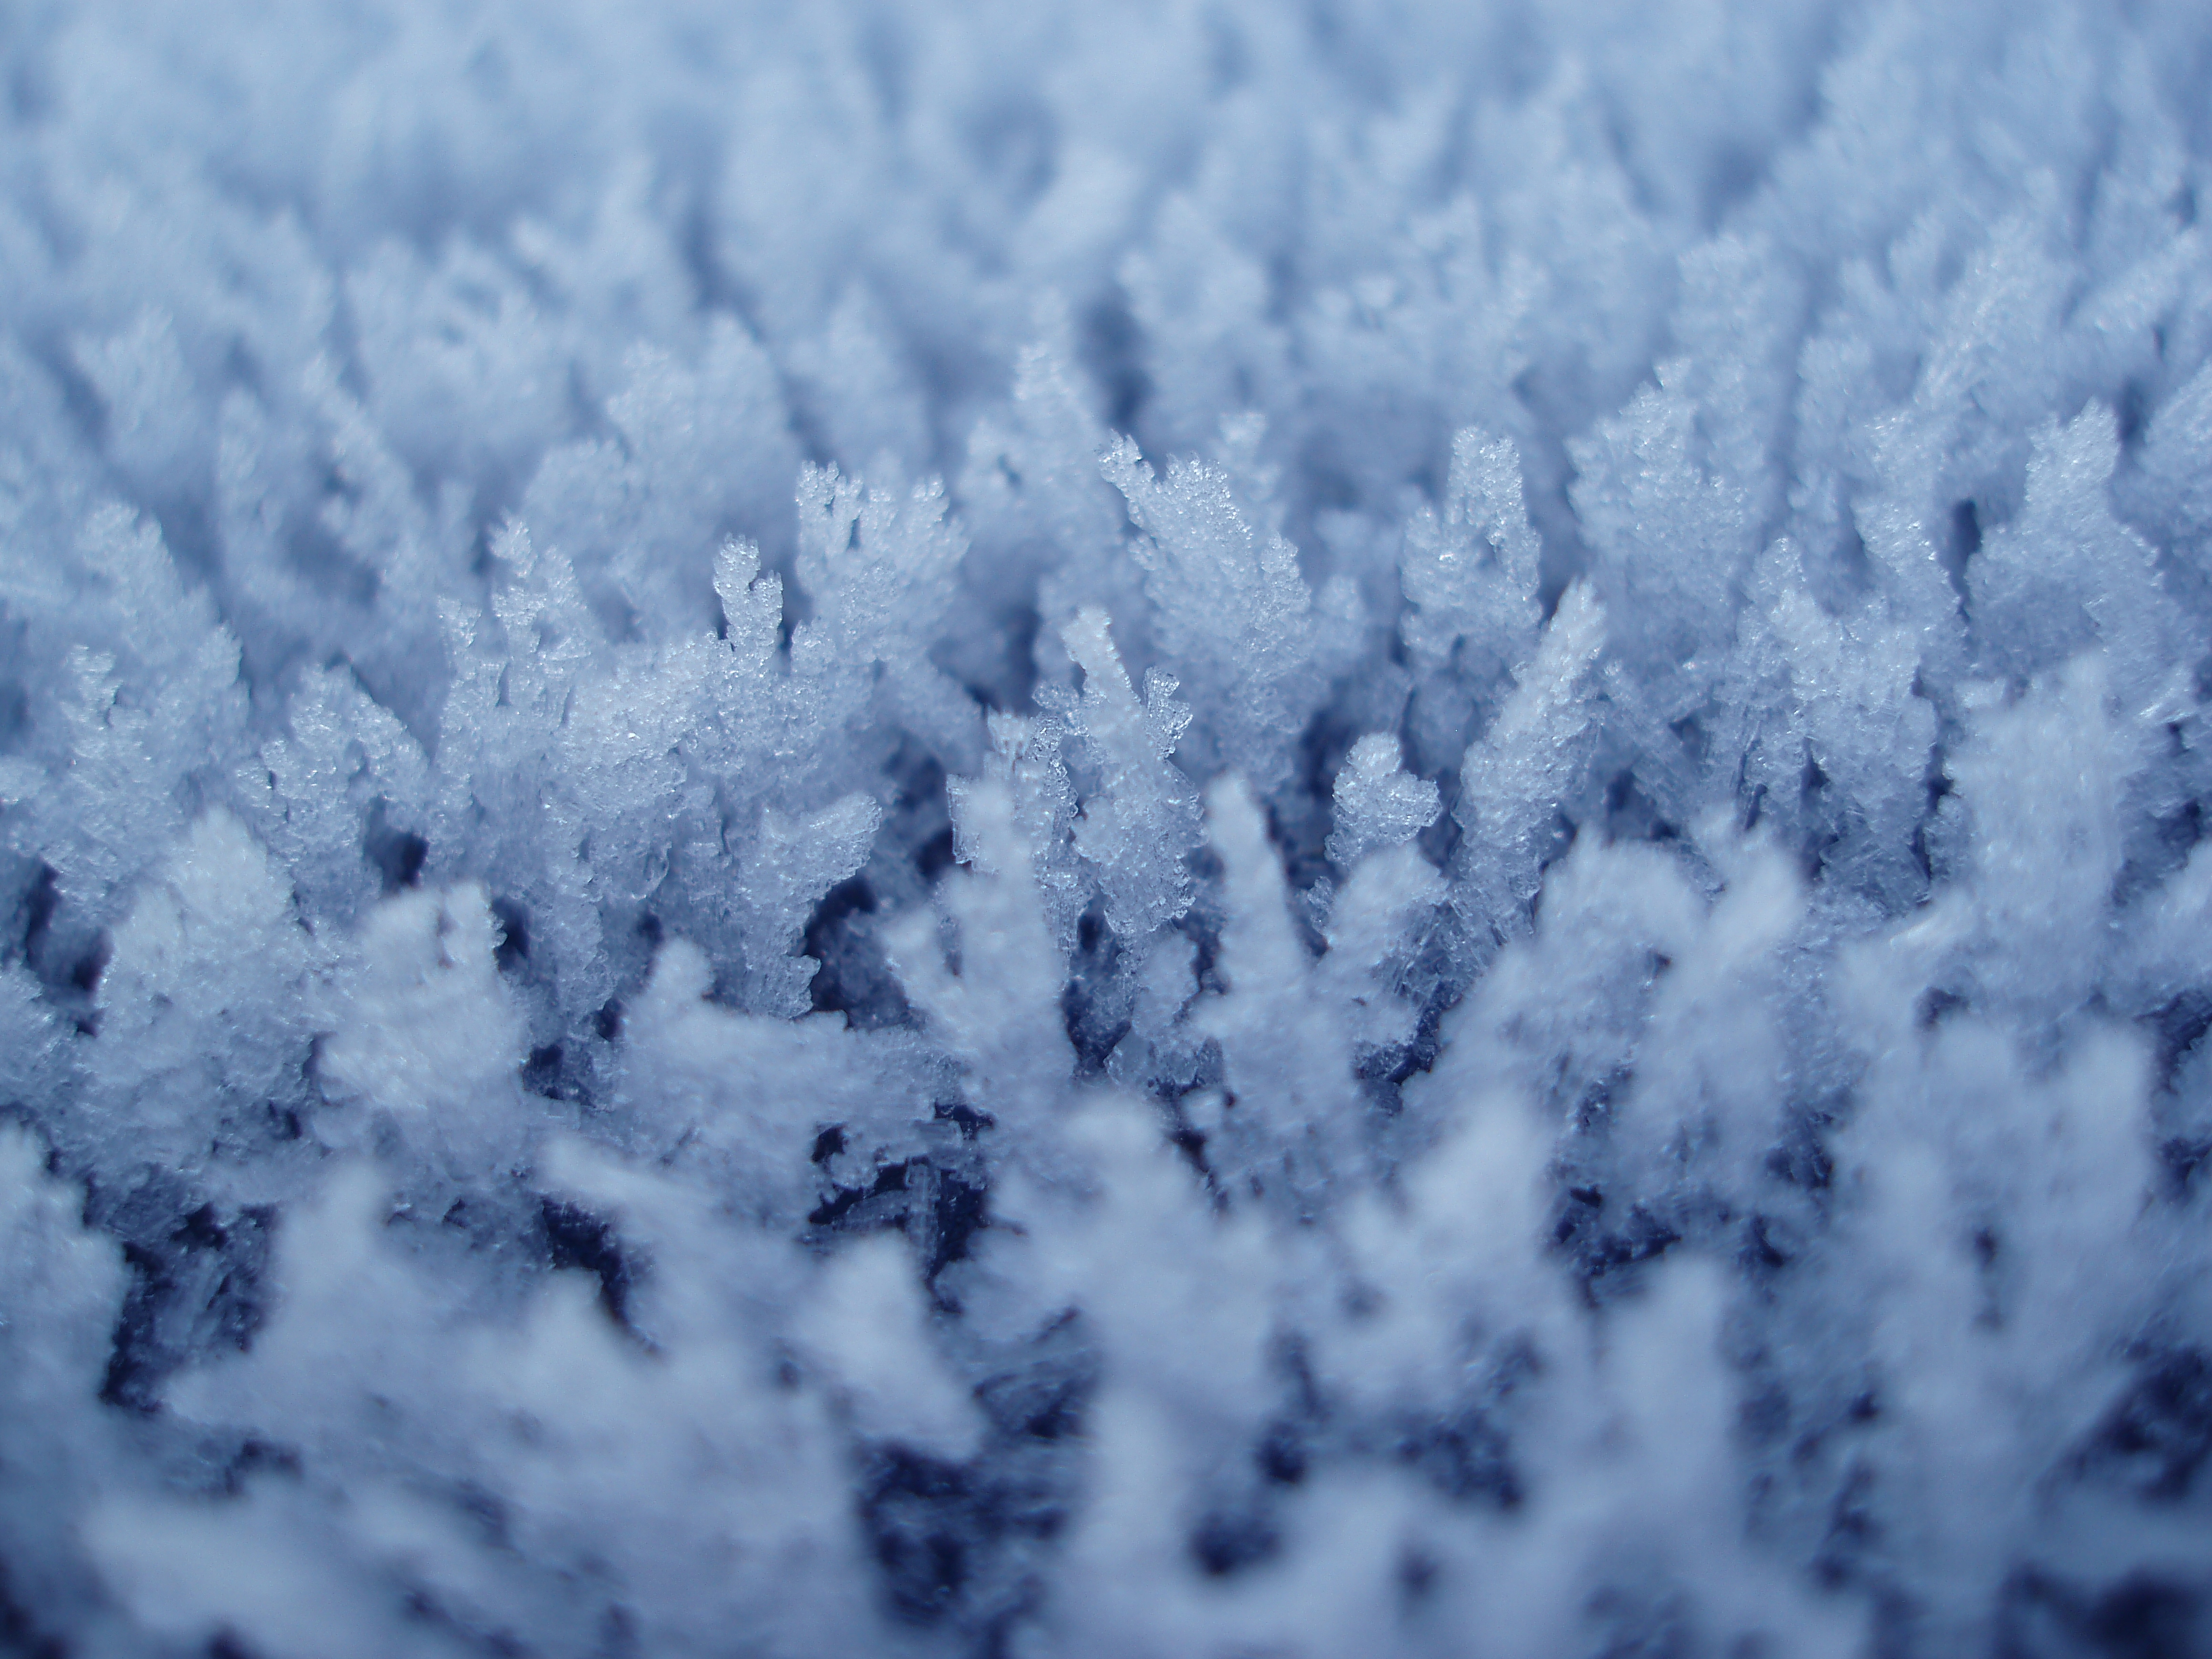 an array of tiny frost crystals with blue tint